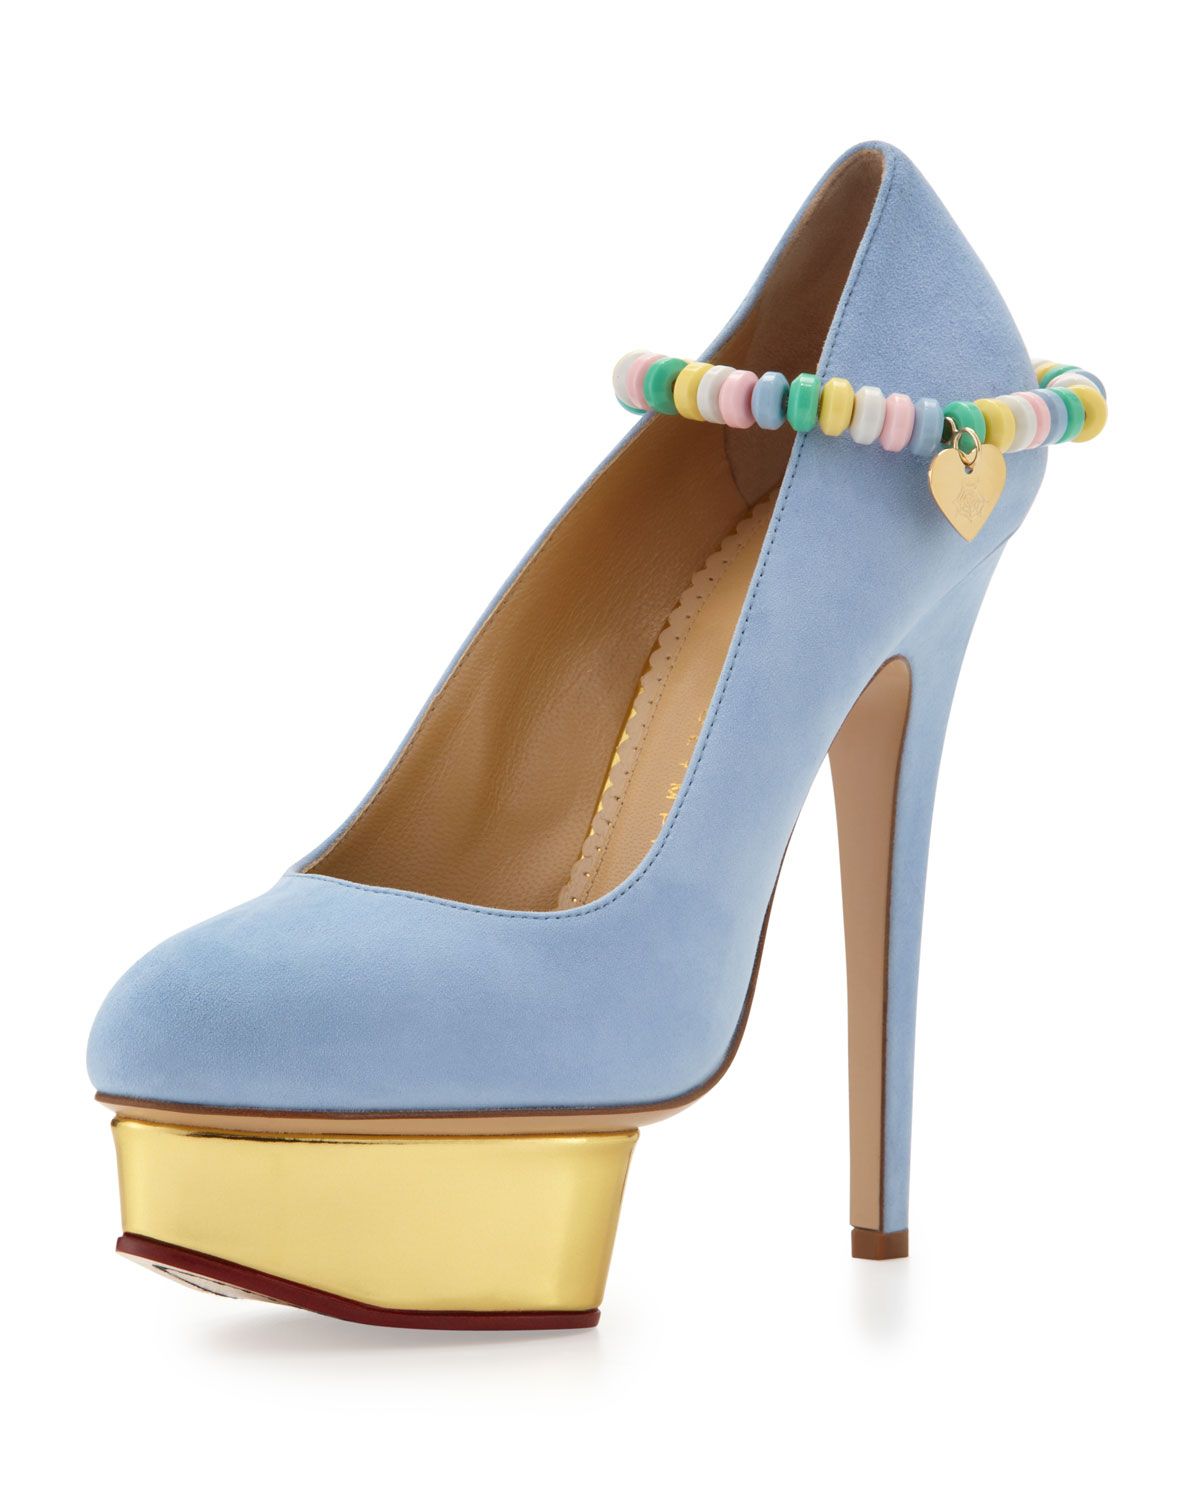 charlotte olympia sweet dolly pump with candy anklet in blue baby blue lyst. Black Bedroom Furniture Sets. Home Design Ideas